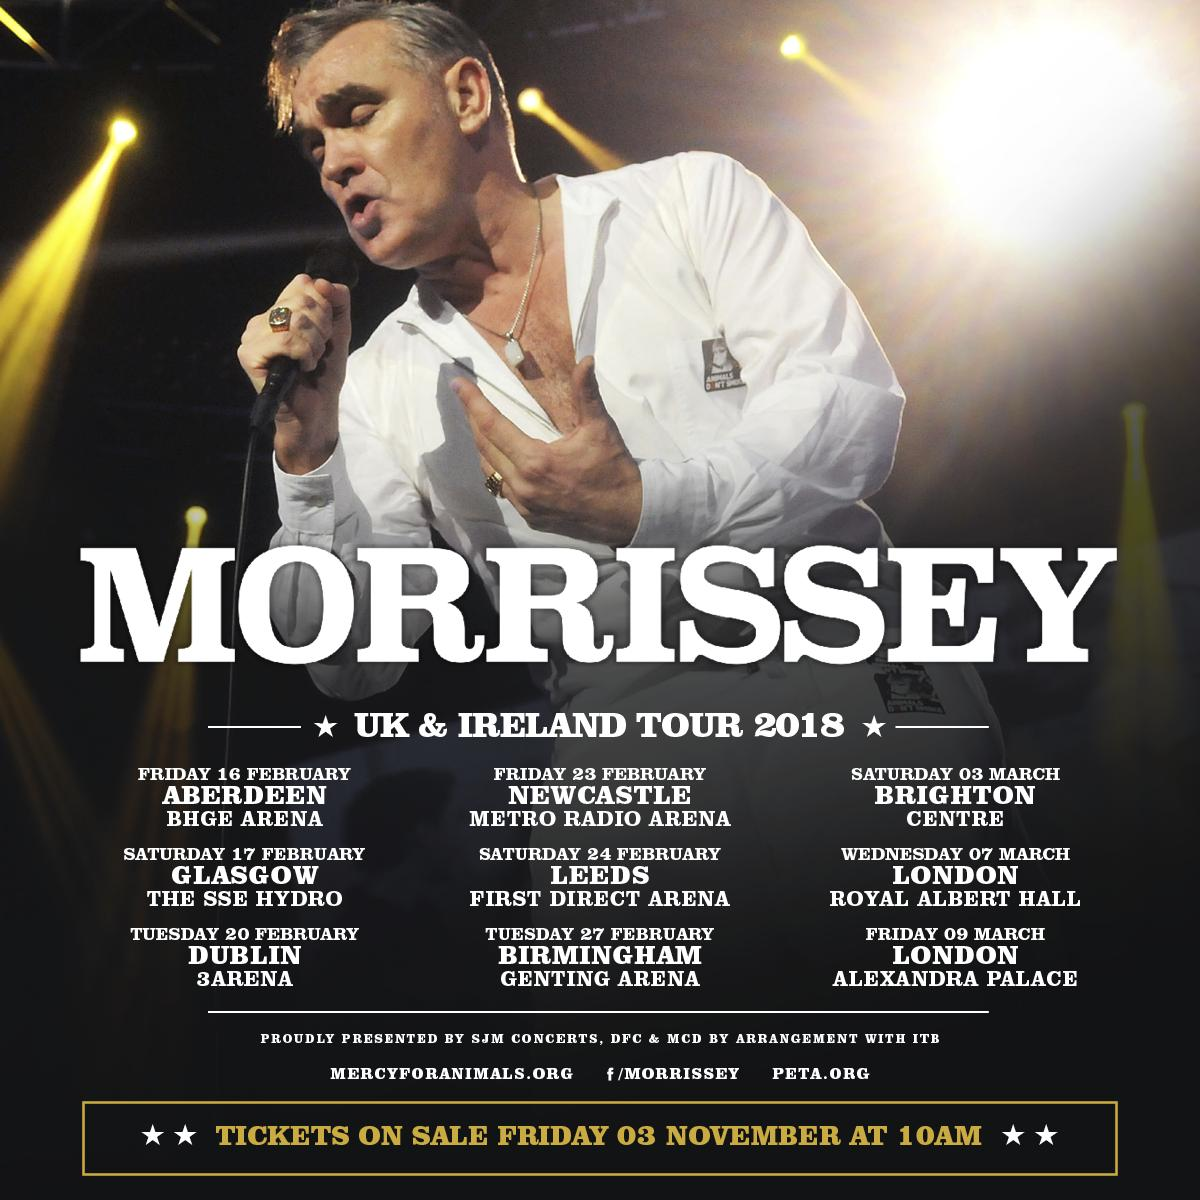 Morrissey 2018 UK & Ireland Tour image